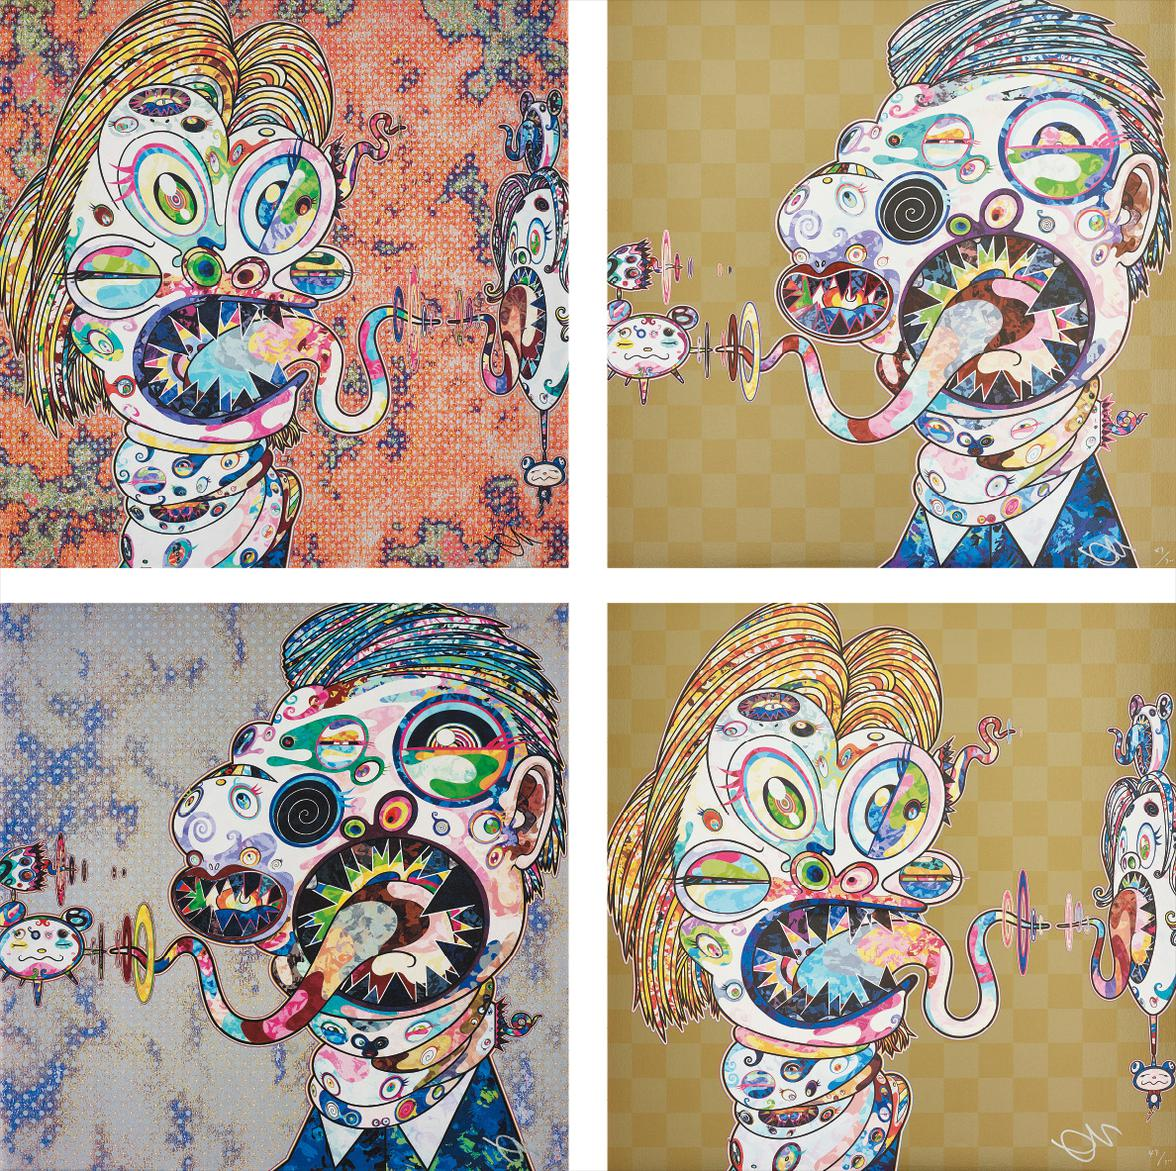 Takashi Murakami-Homage To Francis Bacon (Study For Head Of Isabel Rawsthorne And George Dyer); Homage To Francis Bacon (Study For Head Of Isabel Rawsthorne And George Dyer); Homage To Francis Bacon (Study For Head Of Isabel Rawsthorne And George Dyer); And Homage To Francis Bacon (Study For Head Of Isabel Rawsthorne And George Dyer)-2016